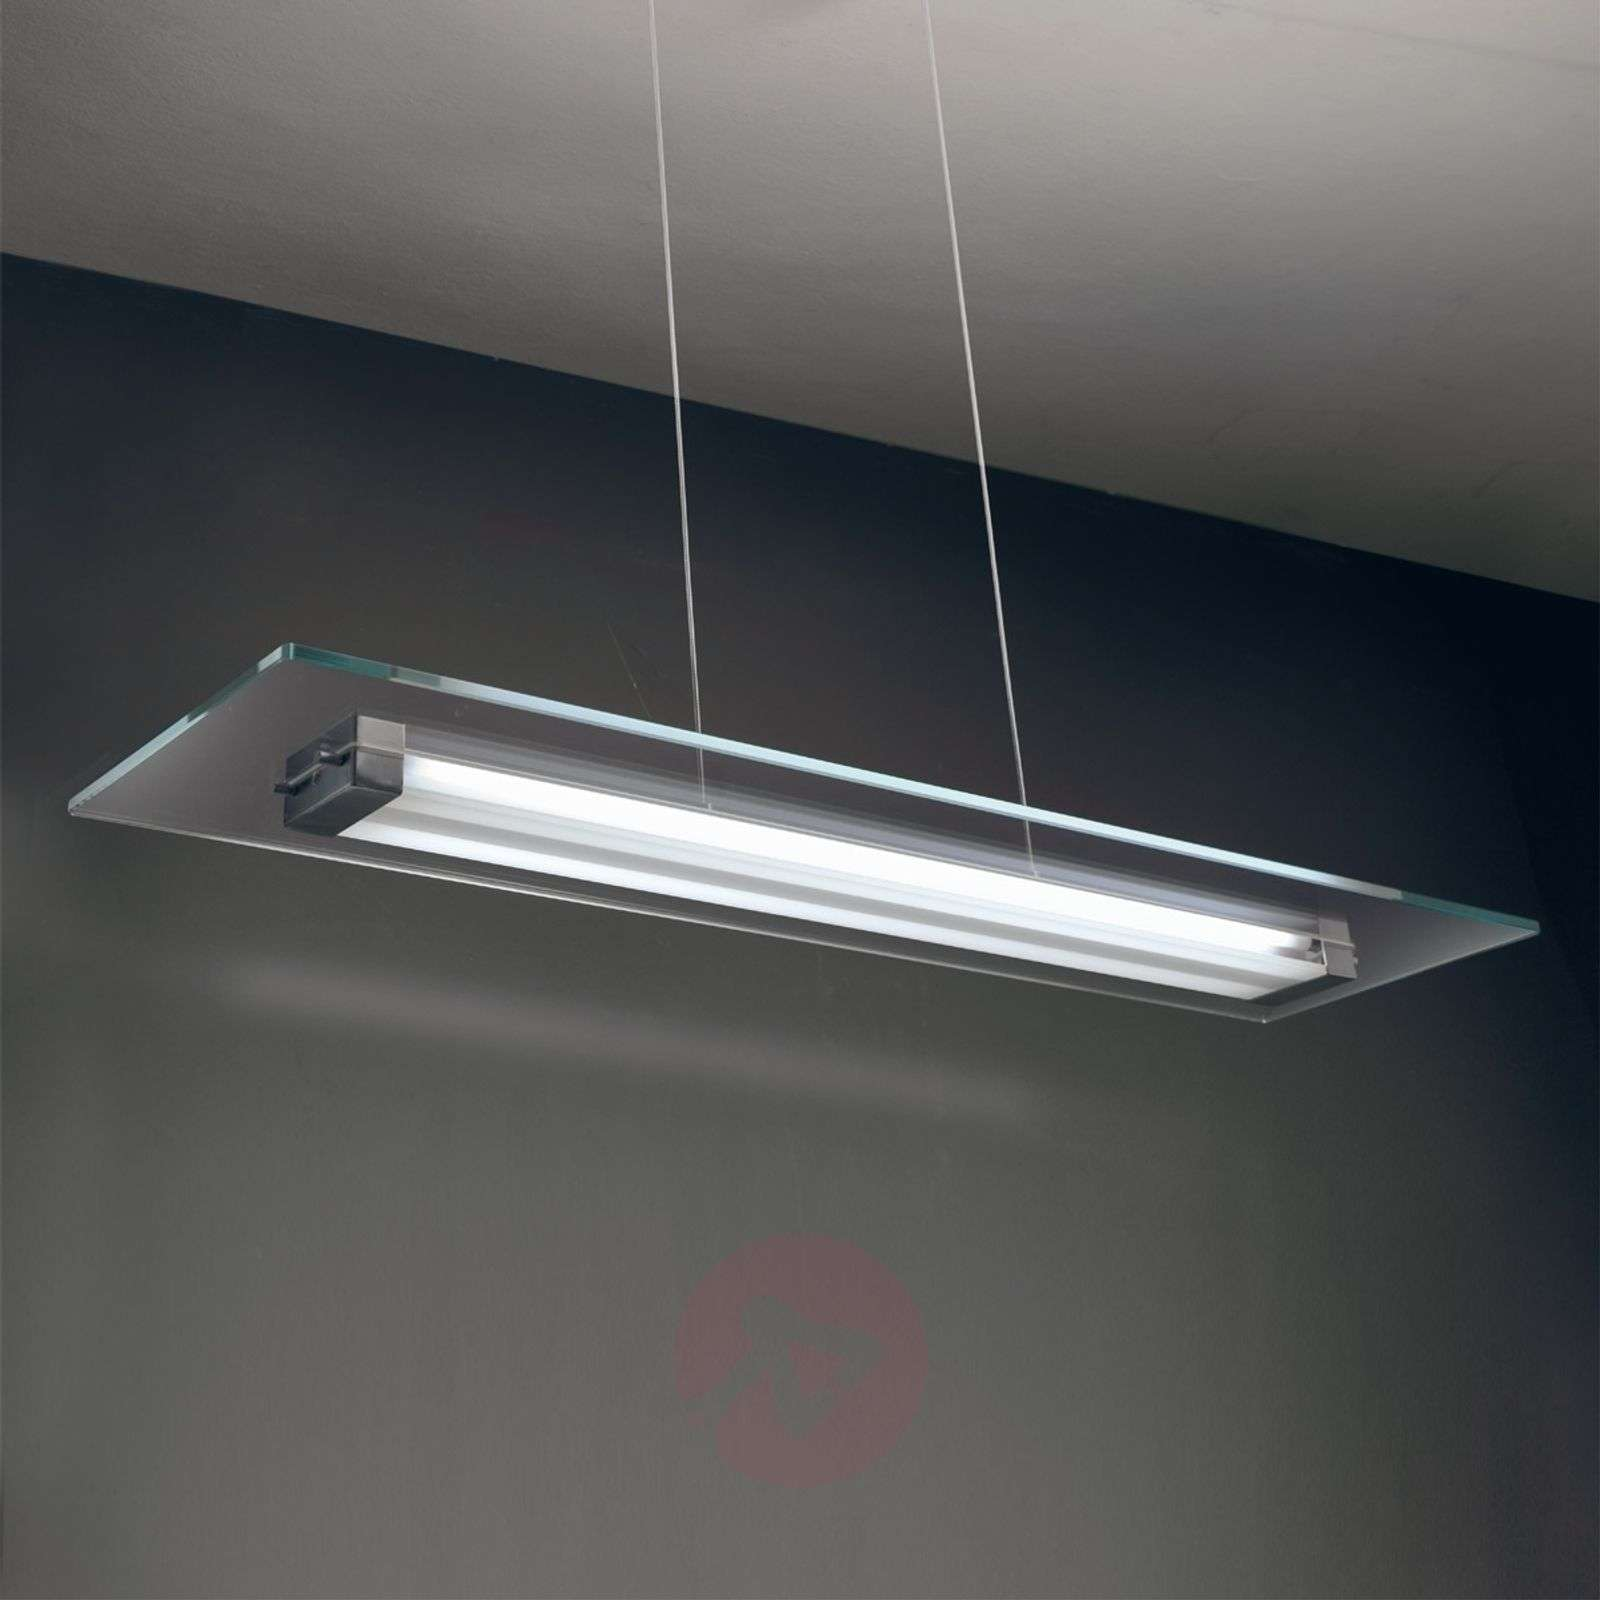 Exclusieve hanglamp Fly-6059075-01